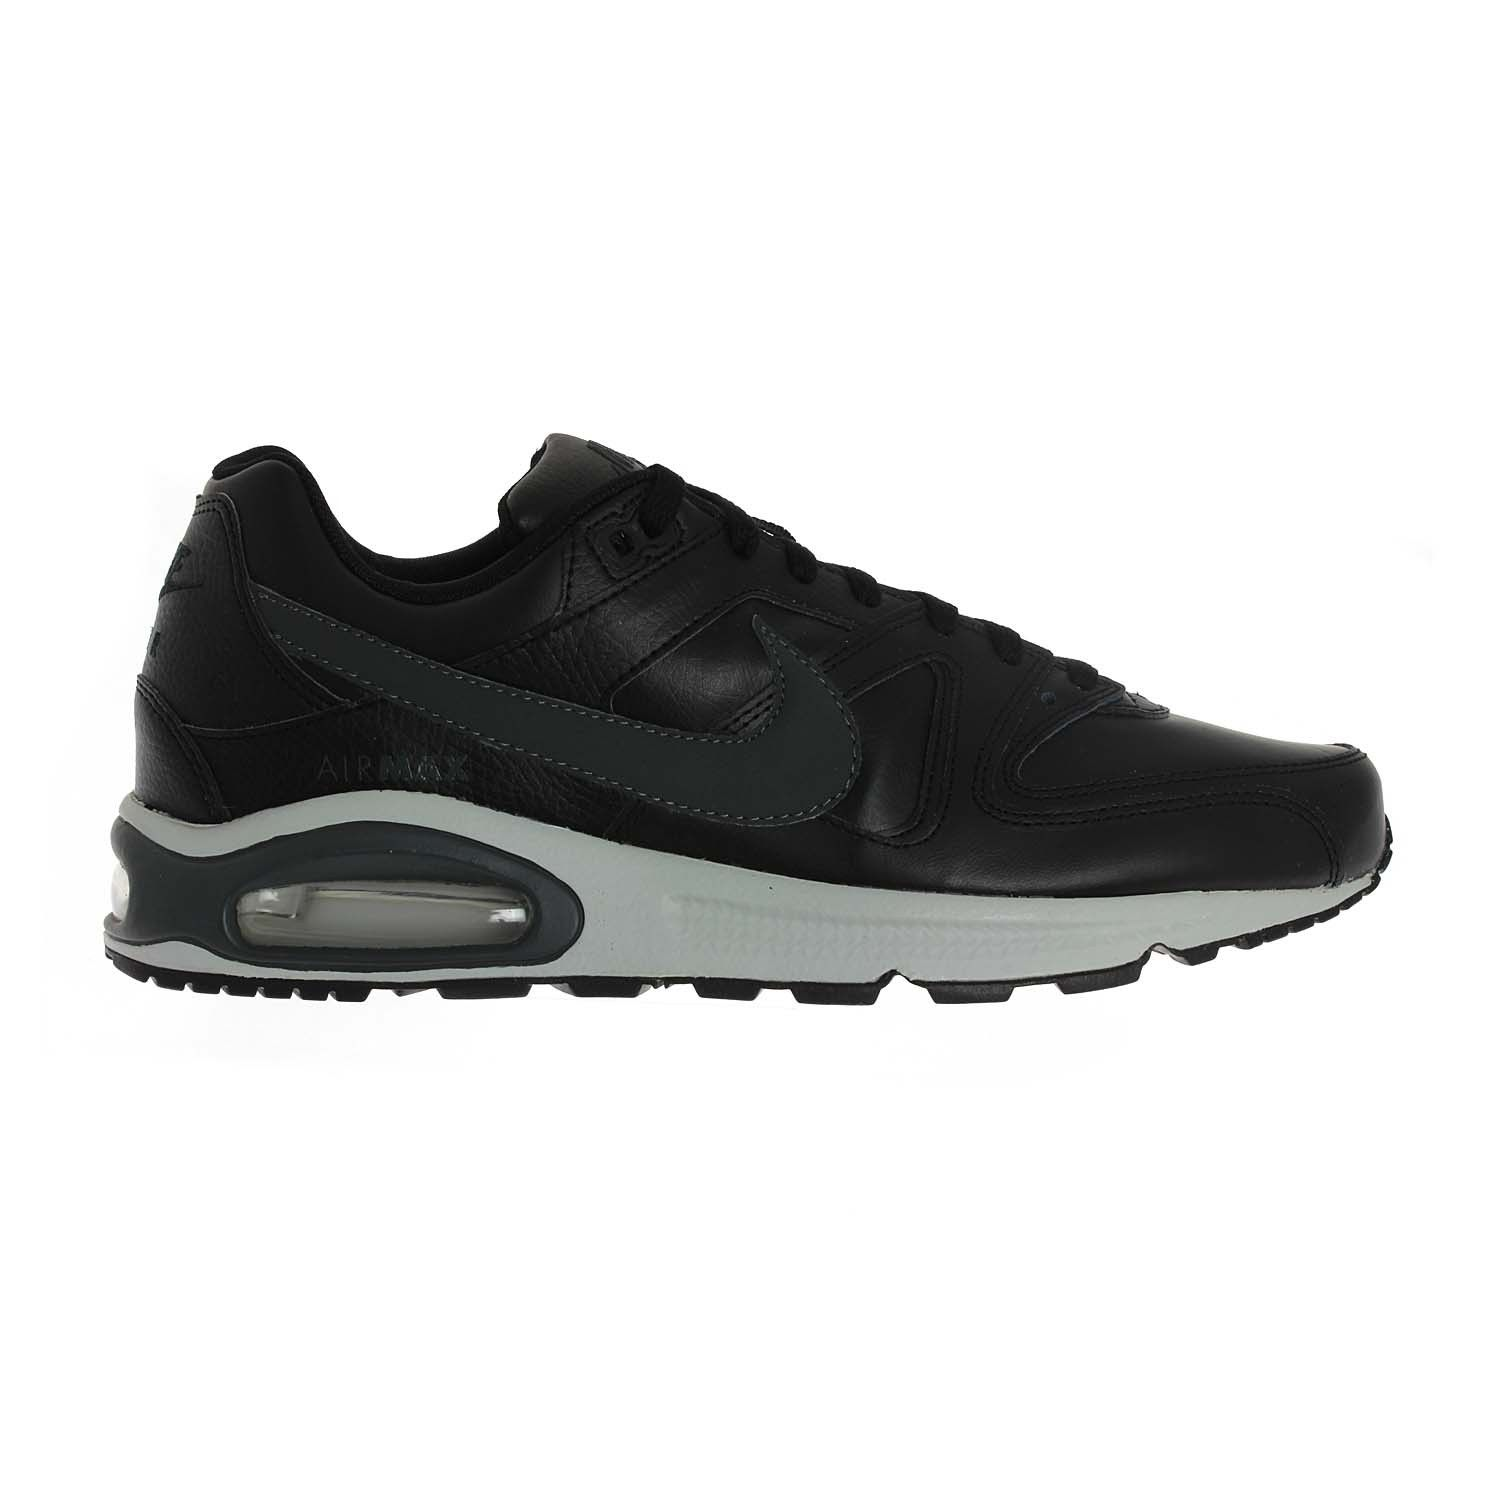 864b6ec82979 ... Nike Air Max Command Leather (749760-001) ...